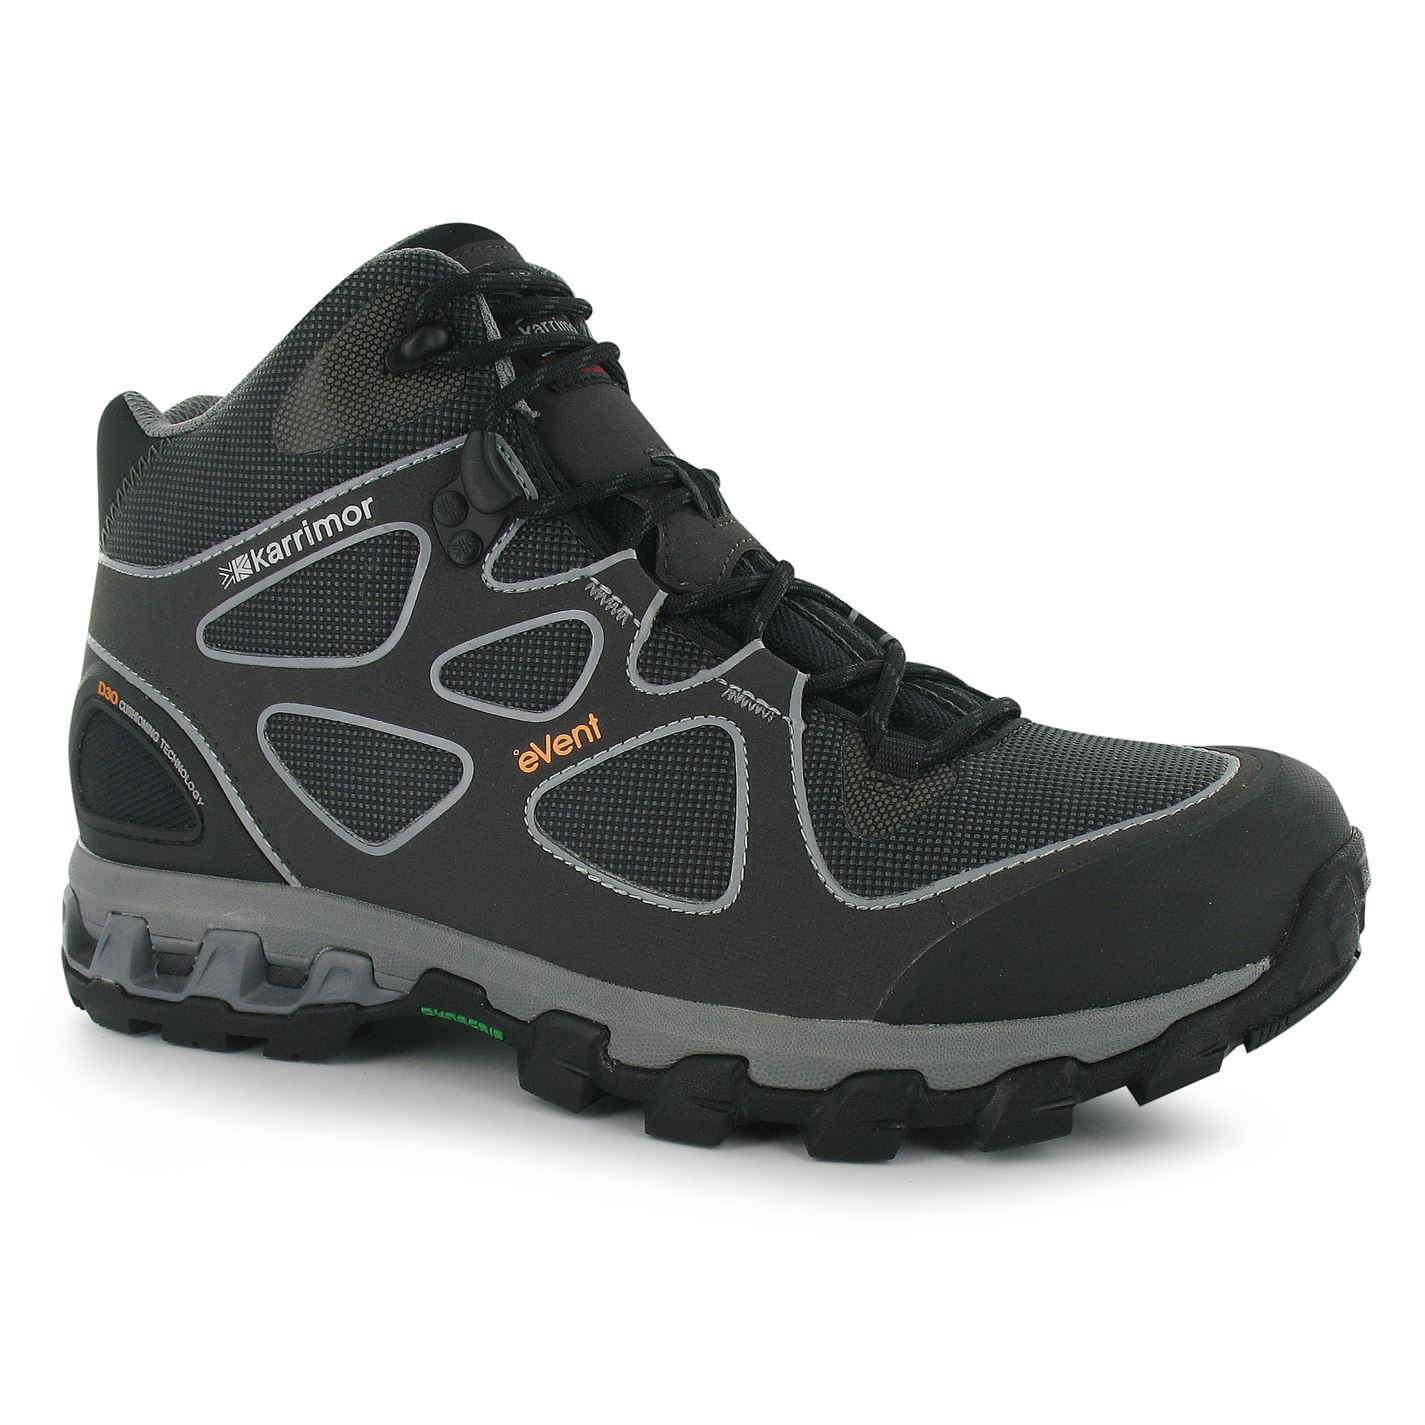 Karrimor Gents  Uomo Stiefel Ksb Cougar Walking Hiking Stiefel Uomo Sport Laced Schuhes Waterproof a47bf6